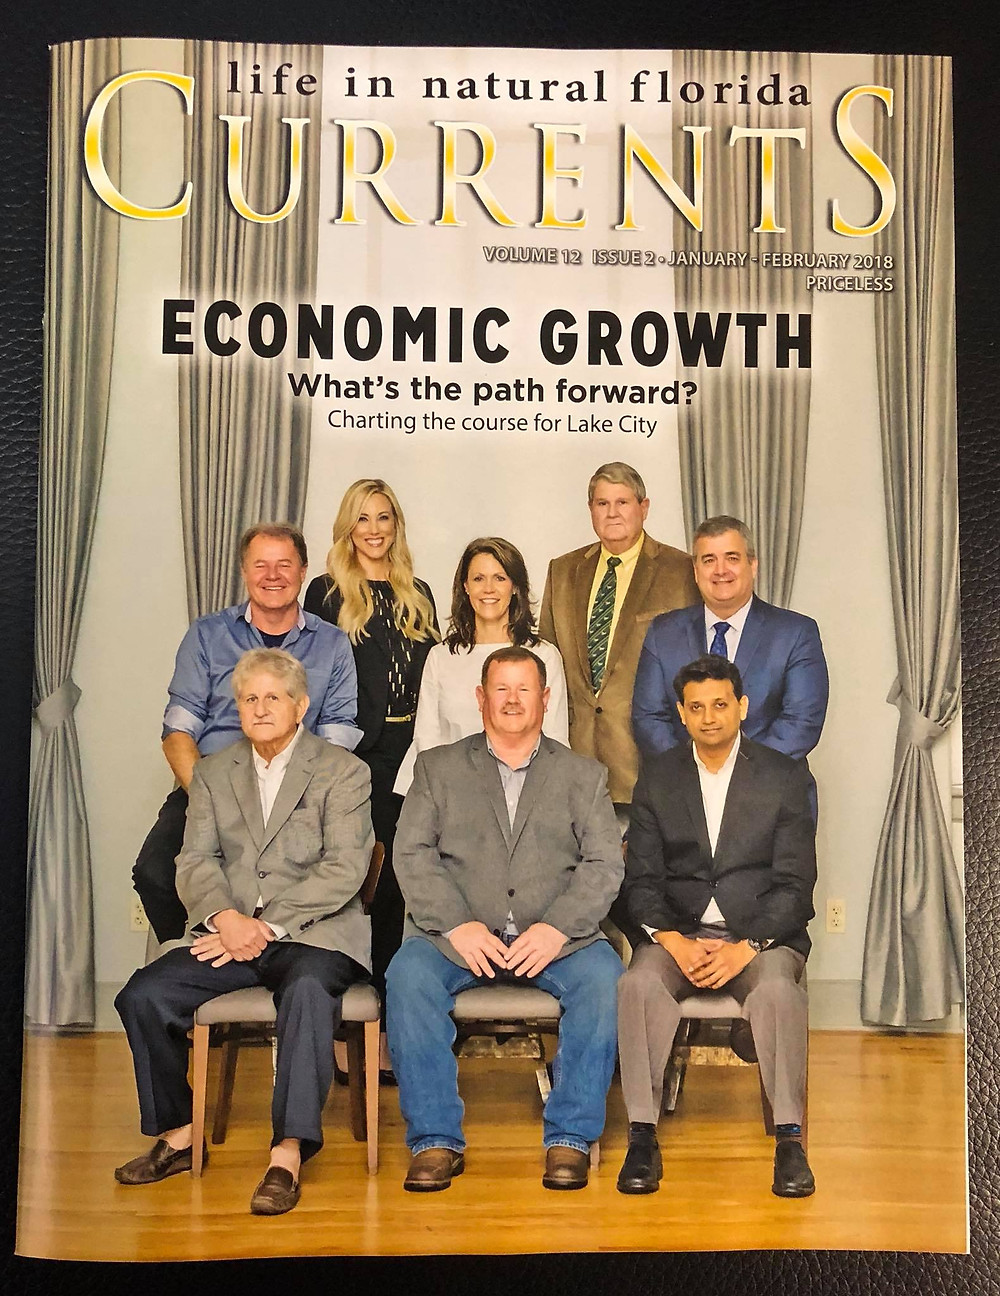 Scott was featured on the cover of Currents Magazine.